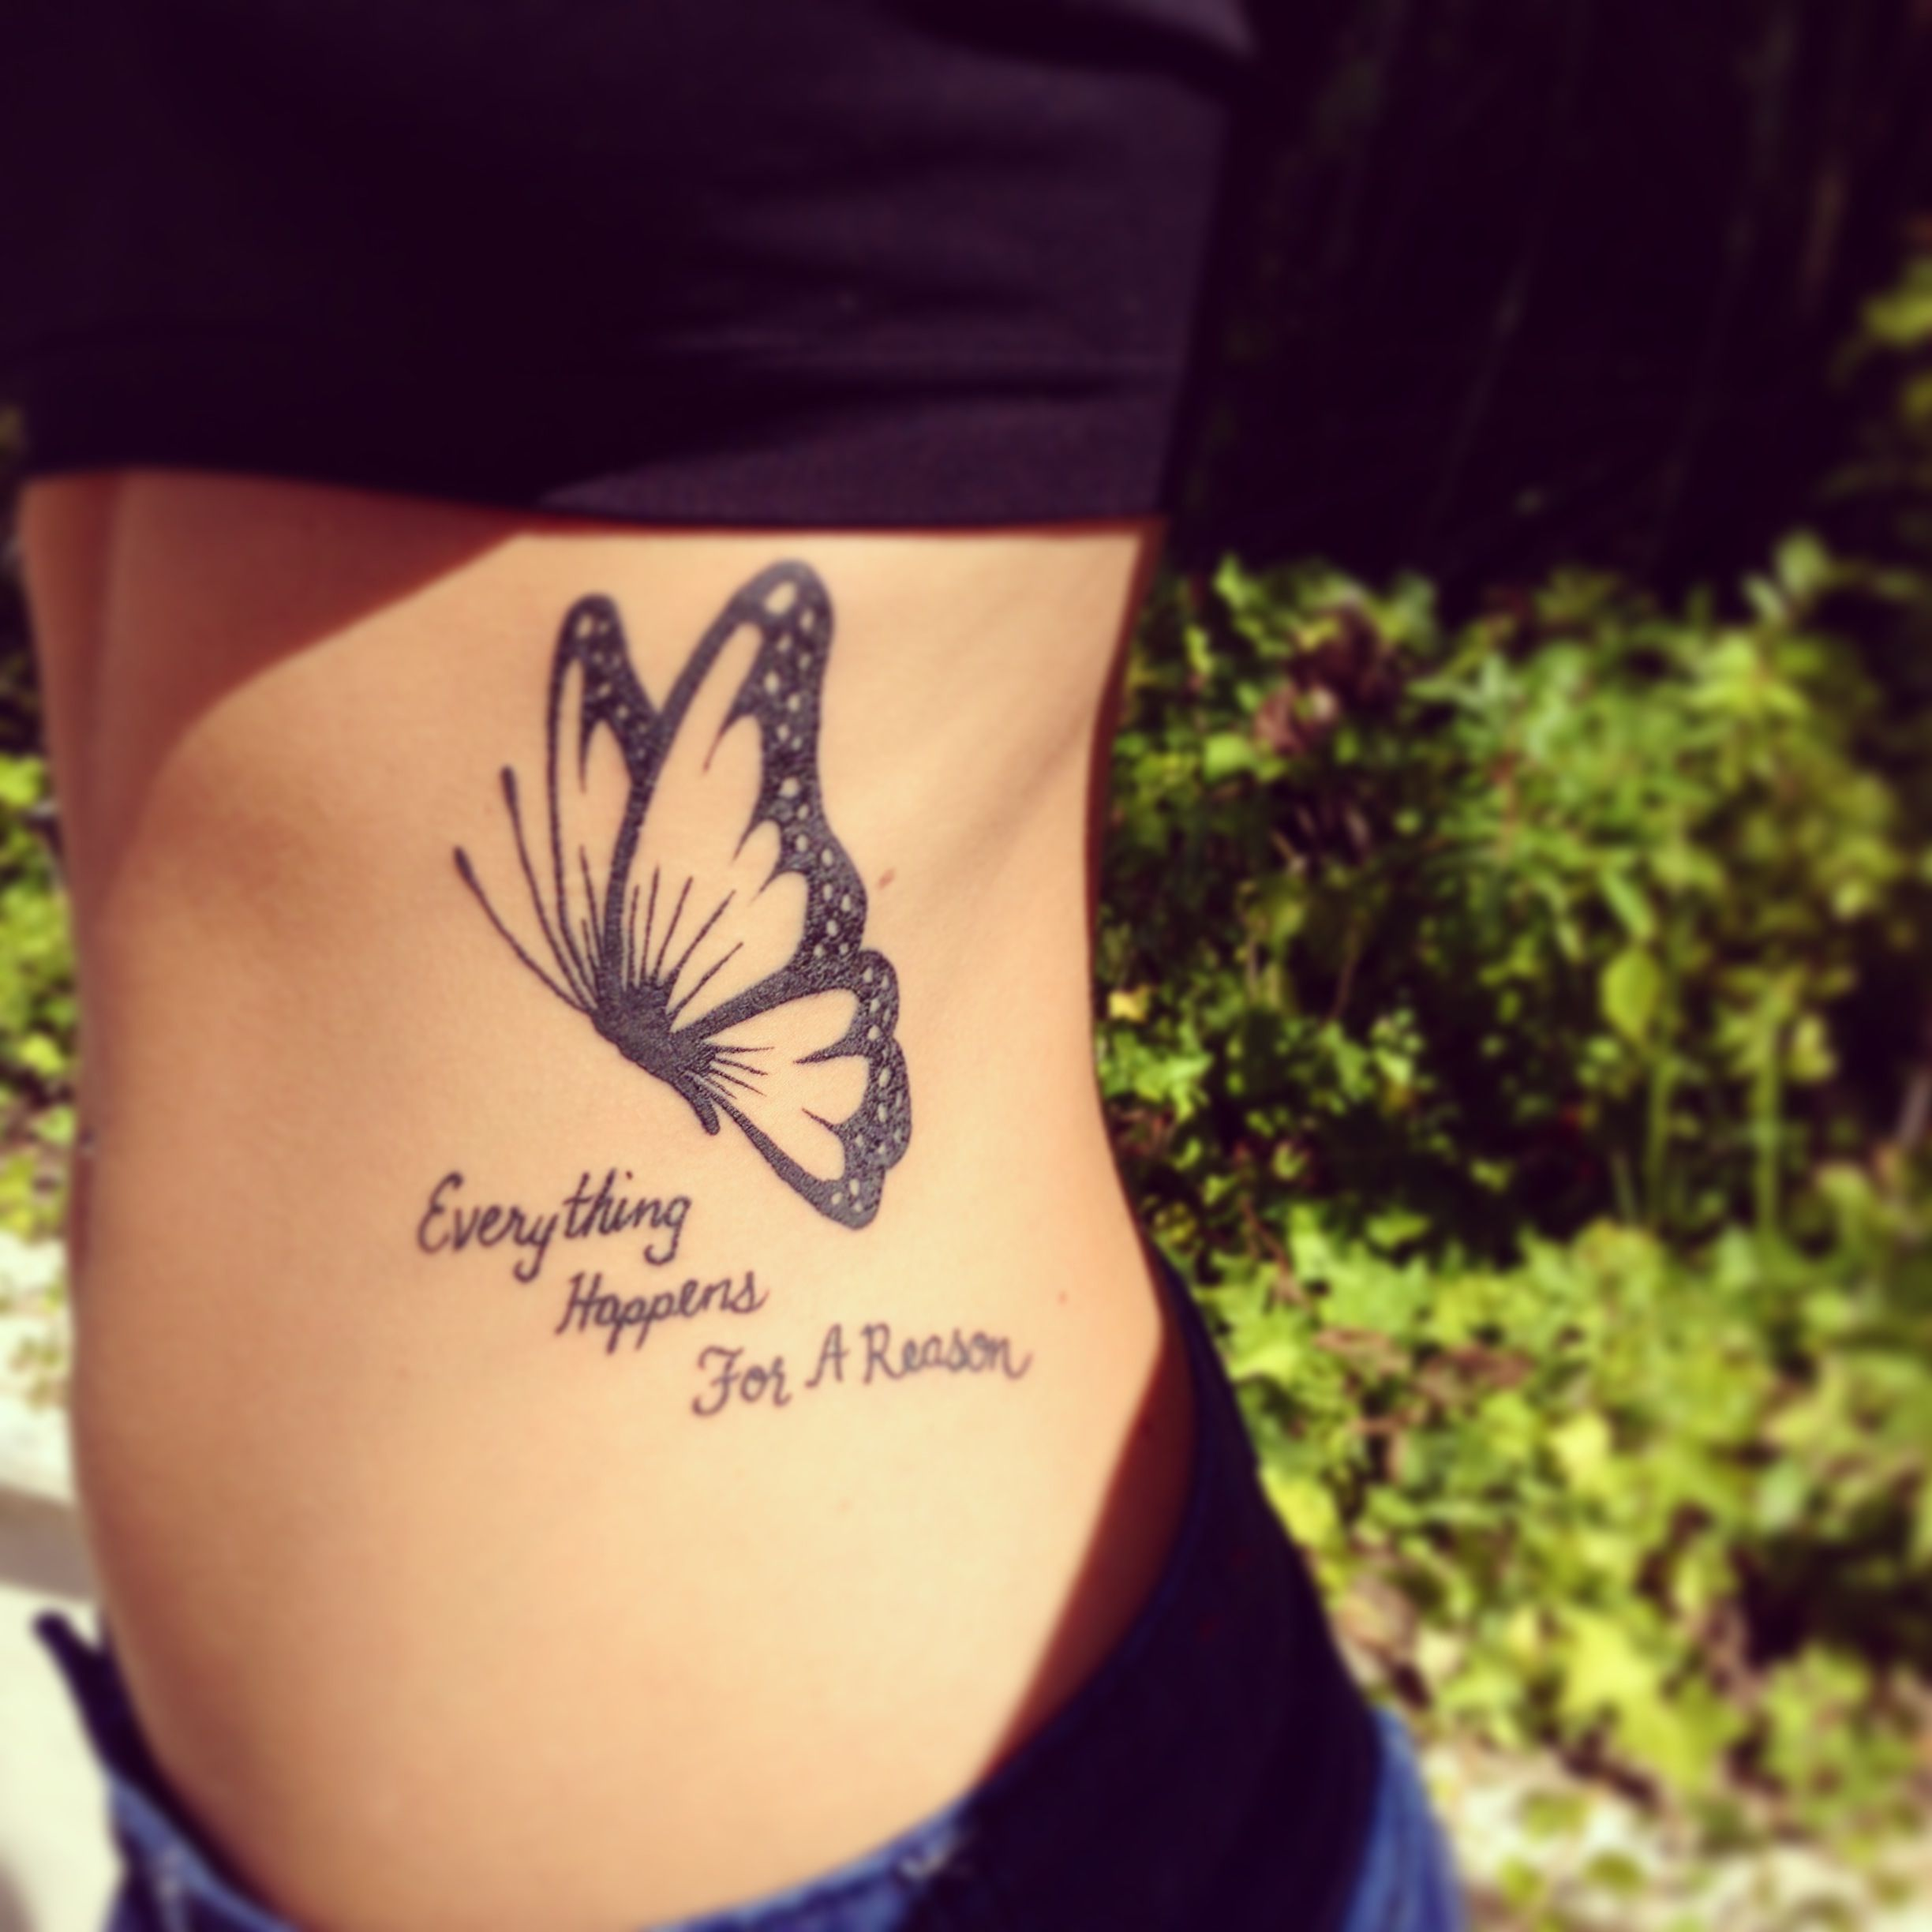 Generic Tattoo For Men Or Women Small: Not A Huge Fan Of Butterfly Tats, But I Like This One